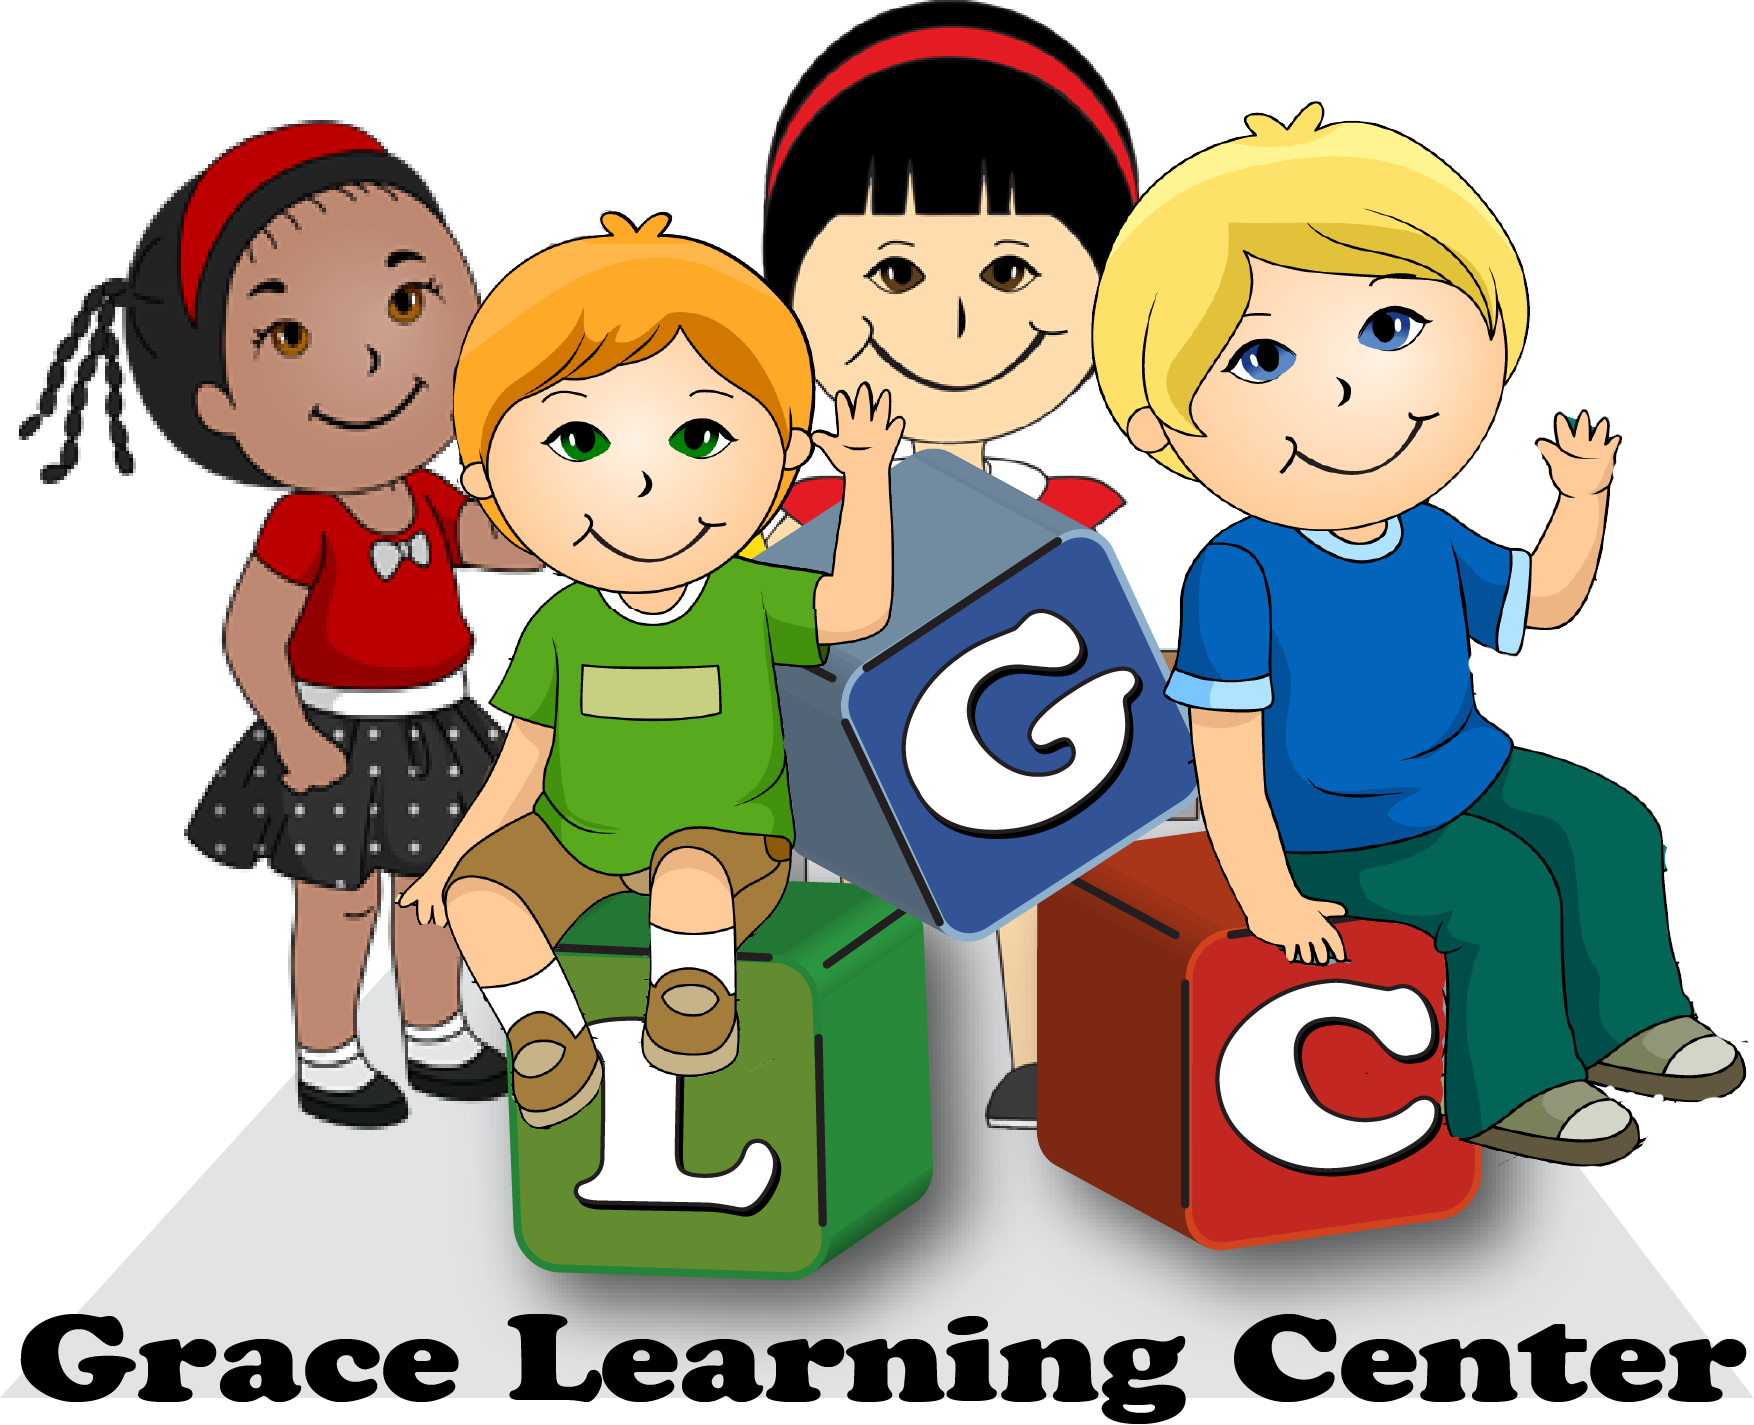 School centers clipart image black and white stock 14 cliparts for free. Download Daycare clipart and use in ... image black and white stock